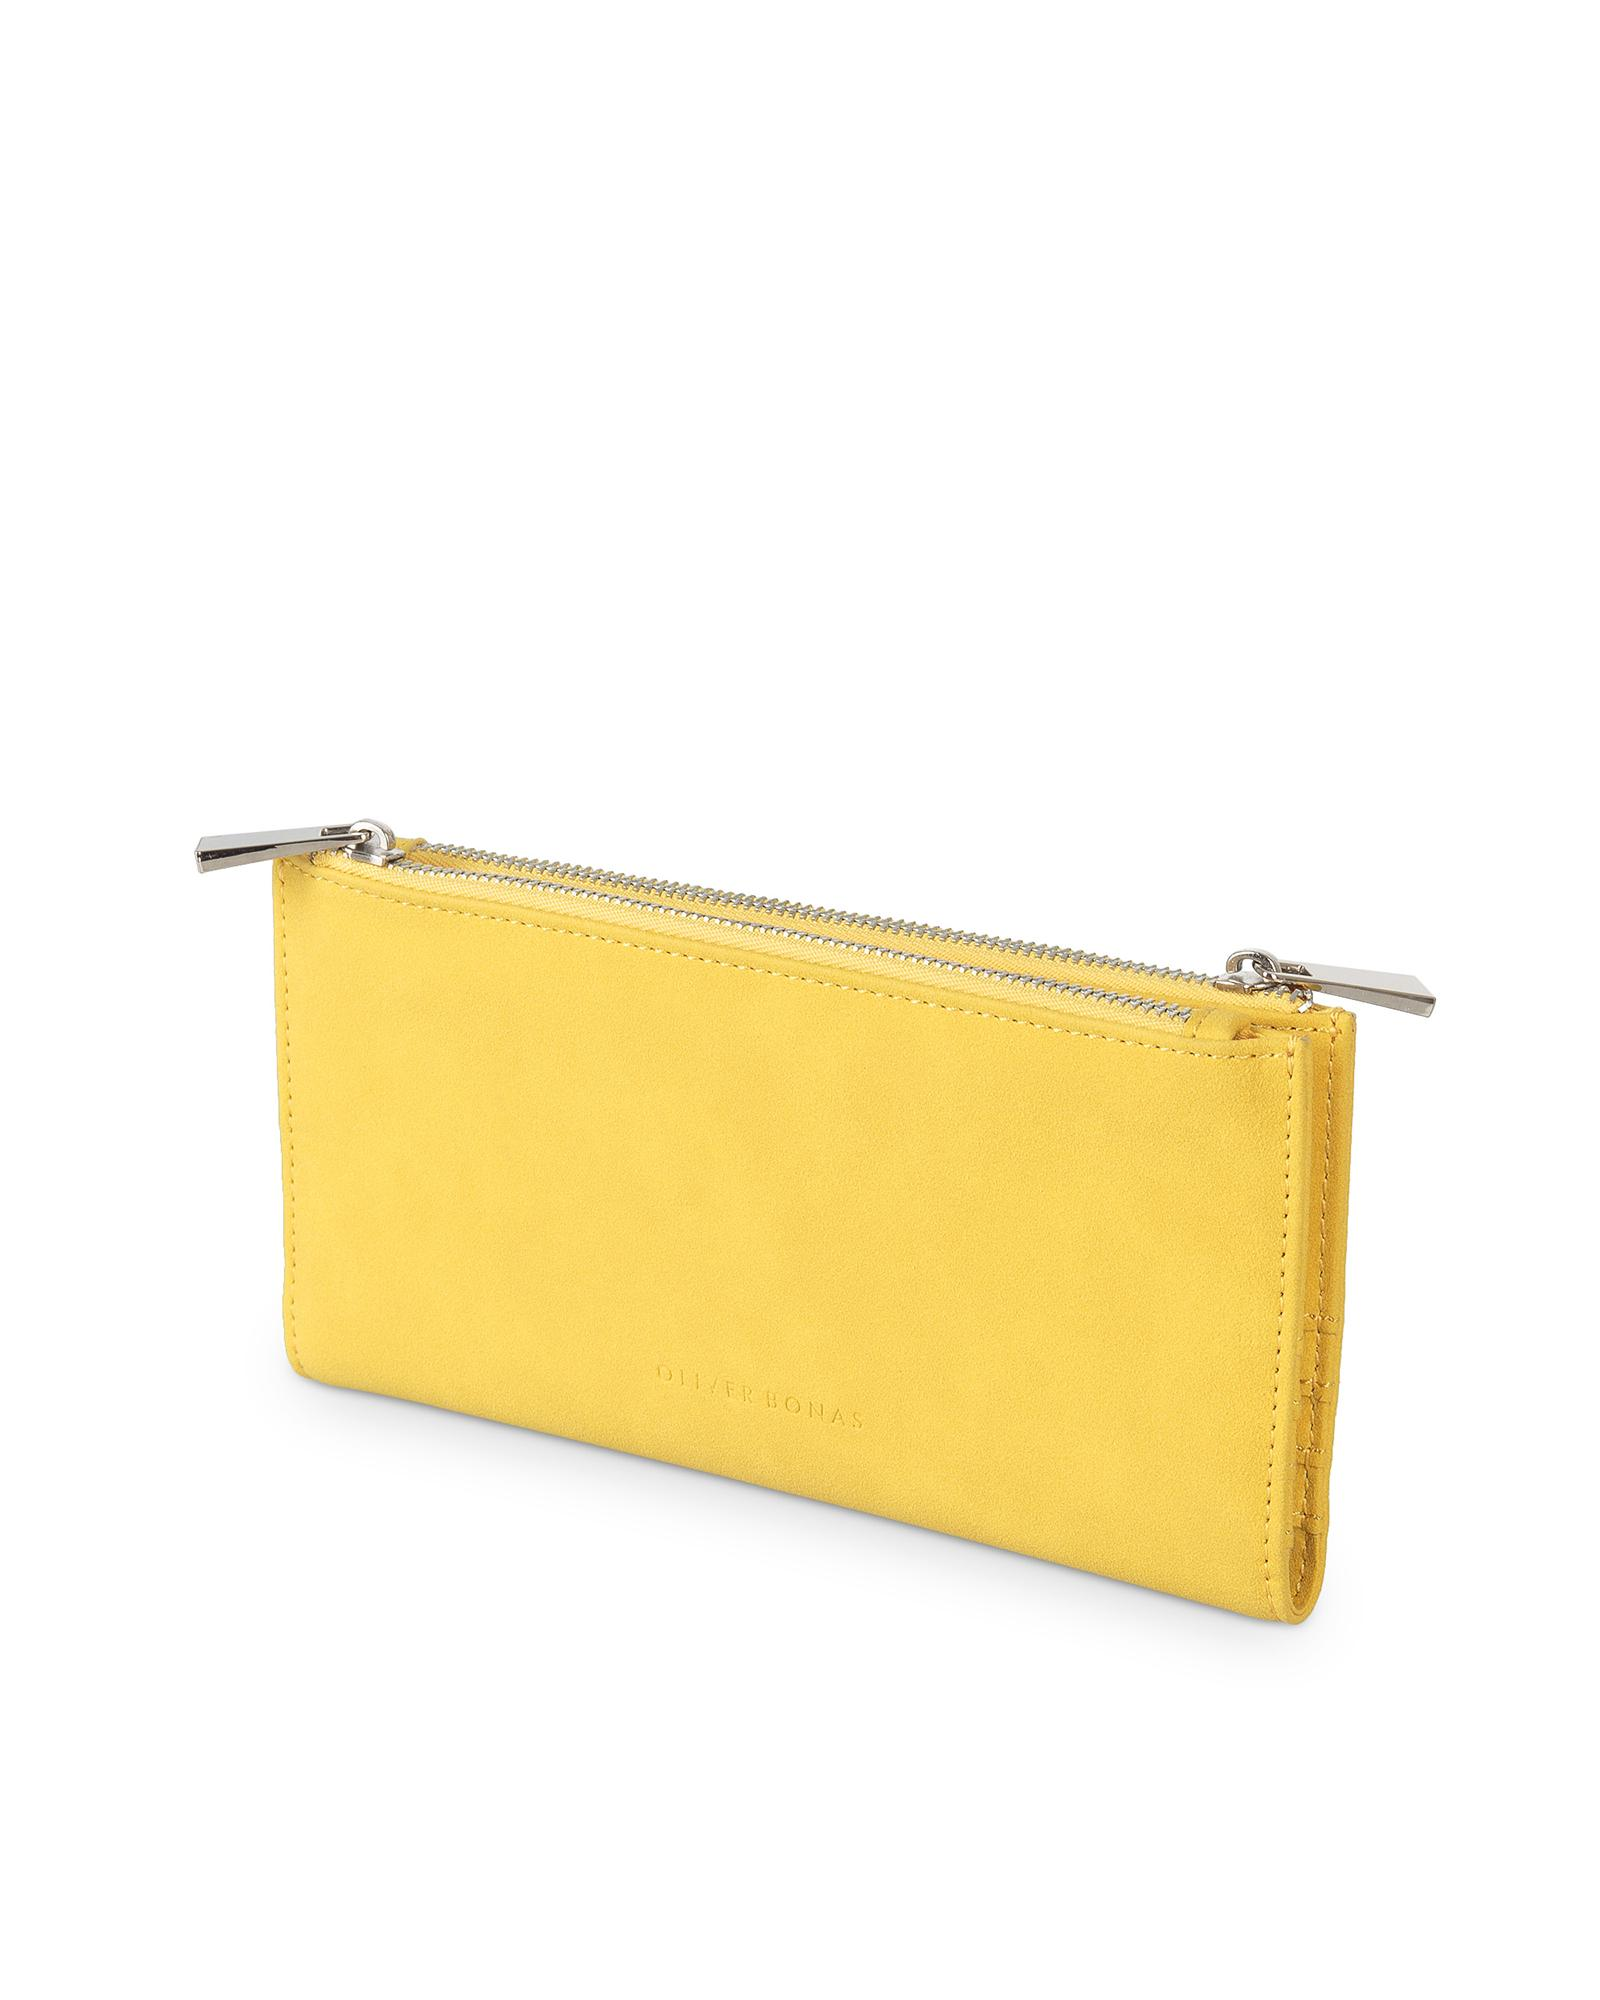 6f89e532bd2 Oliver Bonas Neela Yellow Fold Out Wallet in Yellow - Lyst